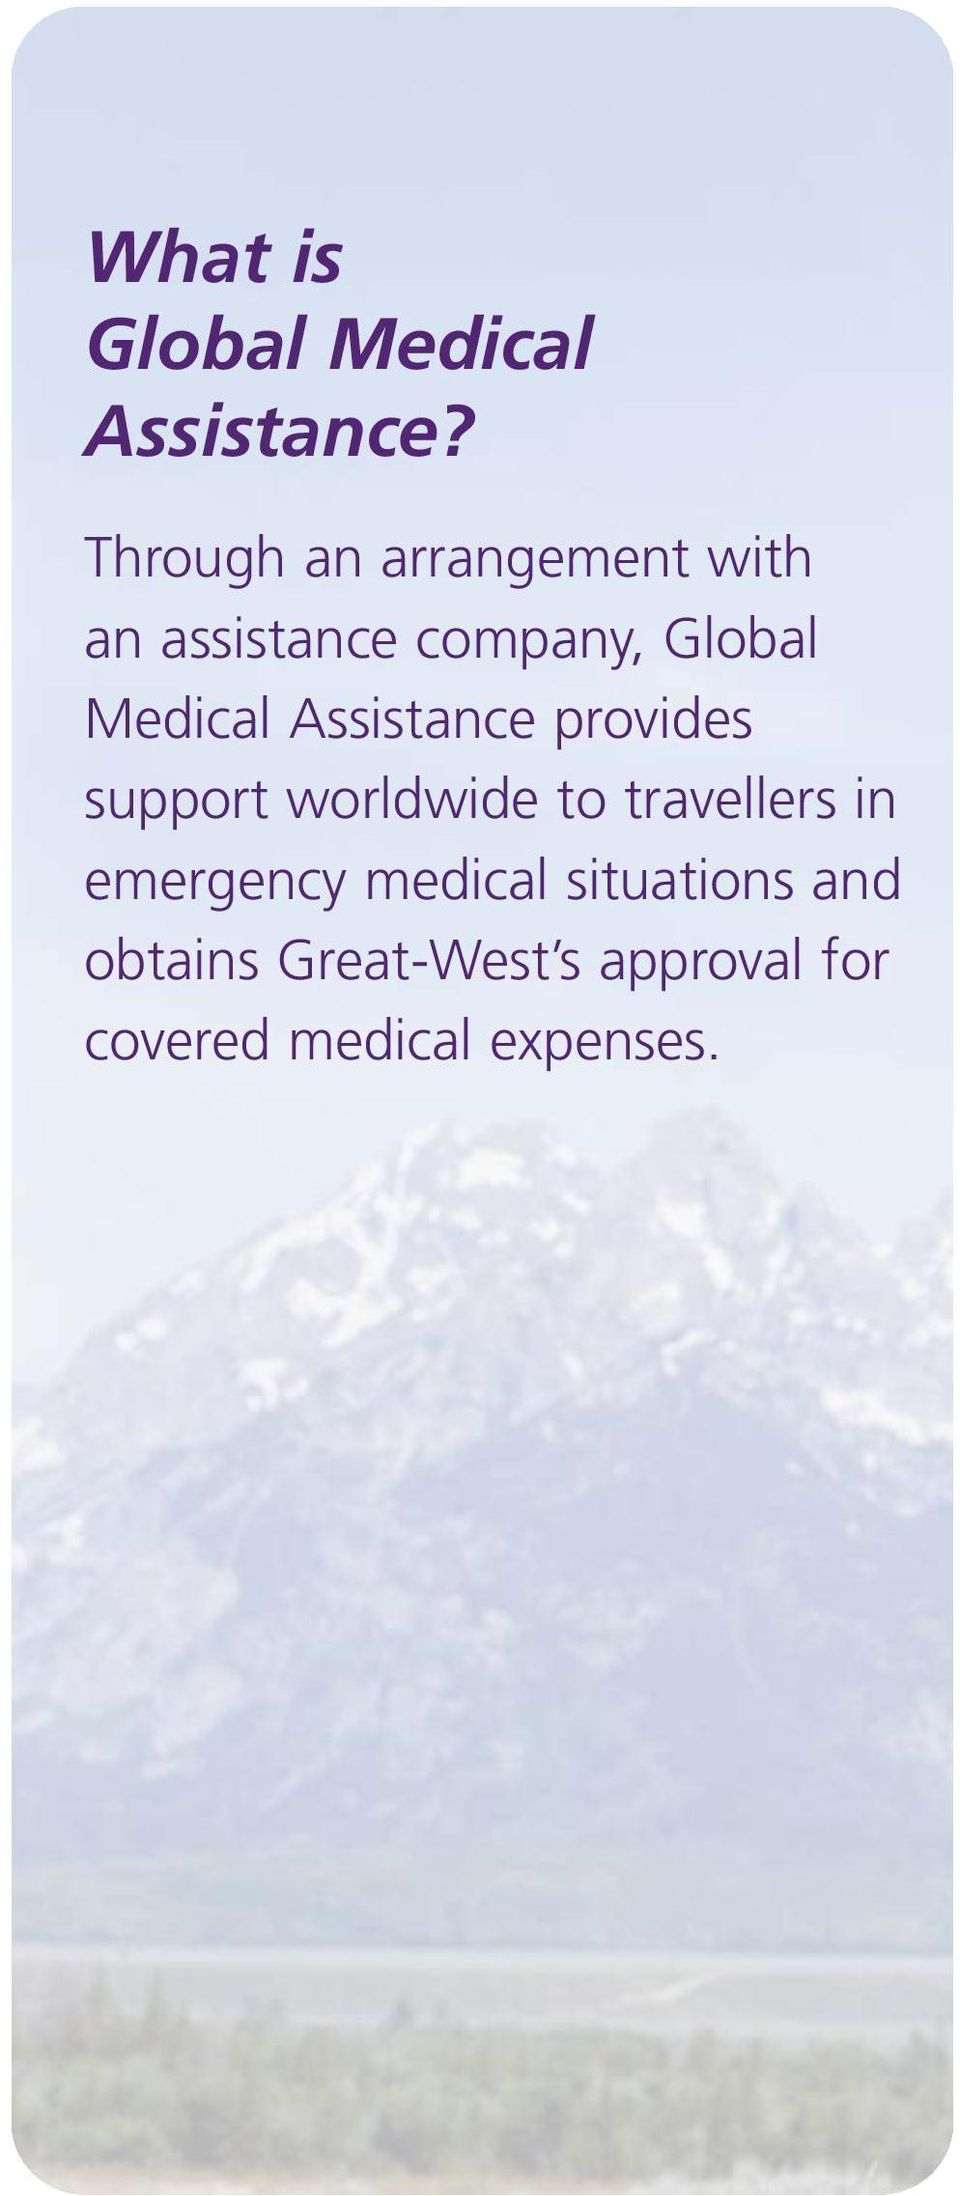 Medical Assistance provides support worldwide to travellers